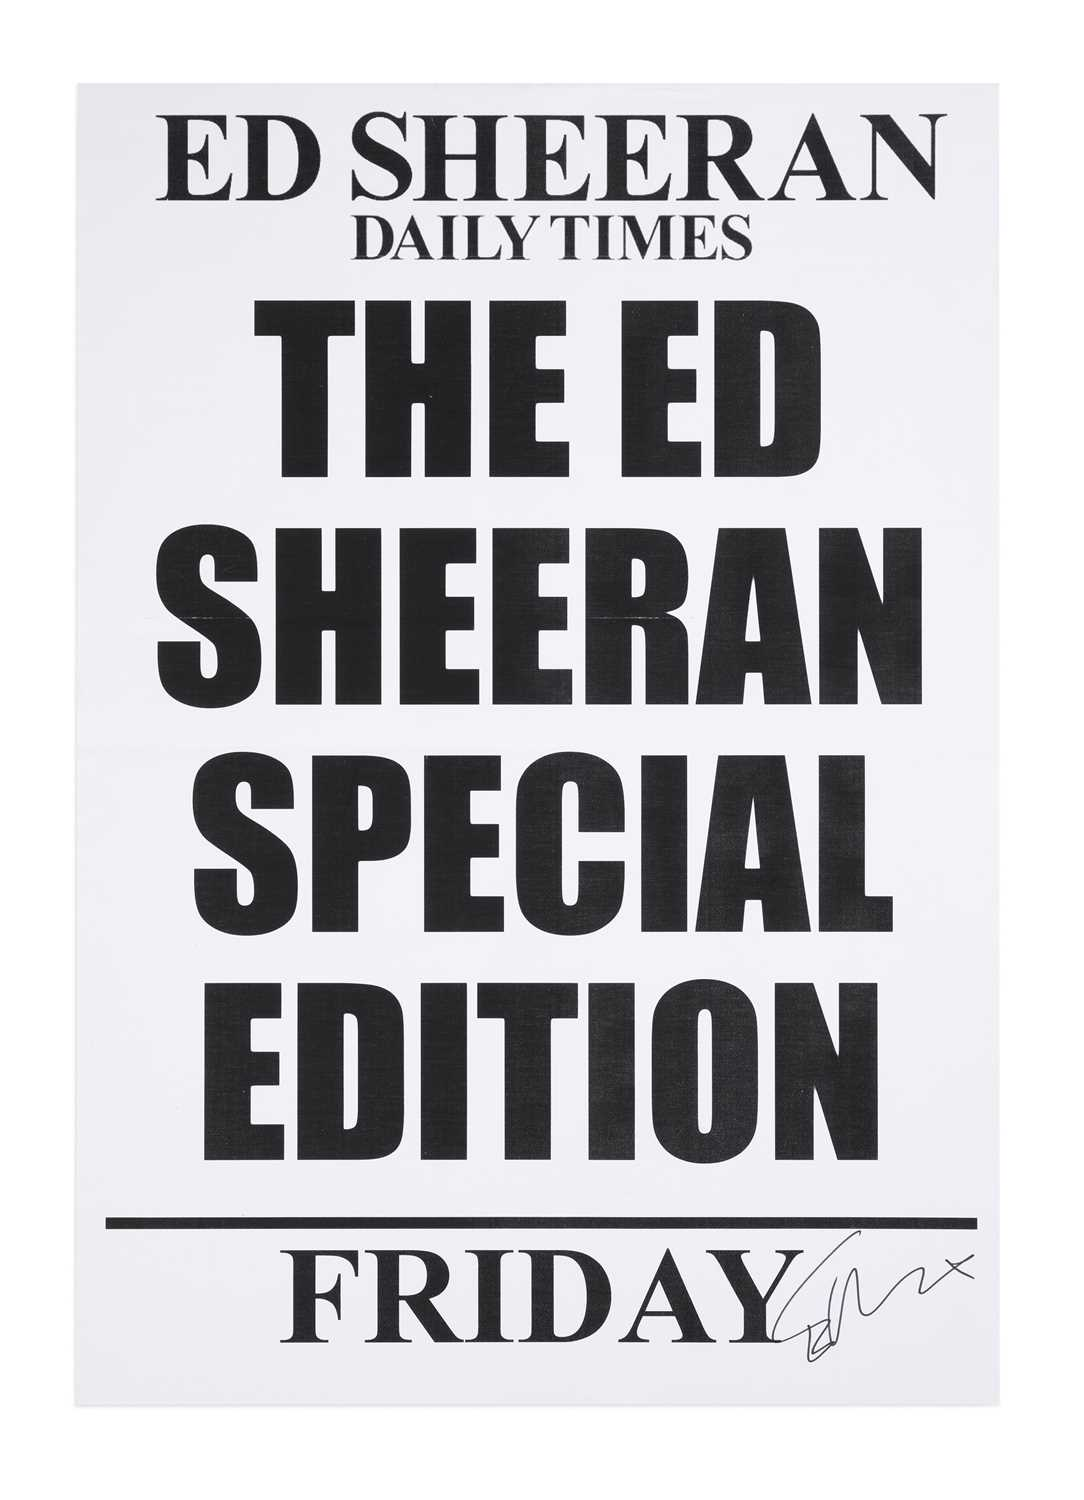 Ed Sheeran Daily Times Newspaper Billboard Poster, Friday 23 August 2019, Signed by Ed Sheeran On